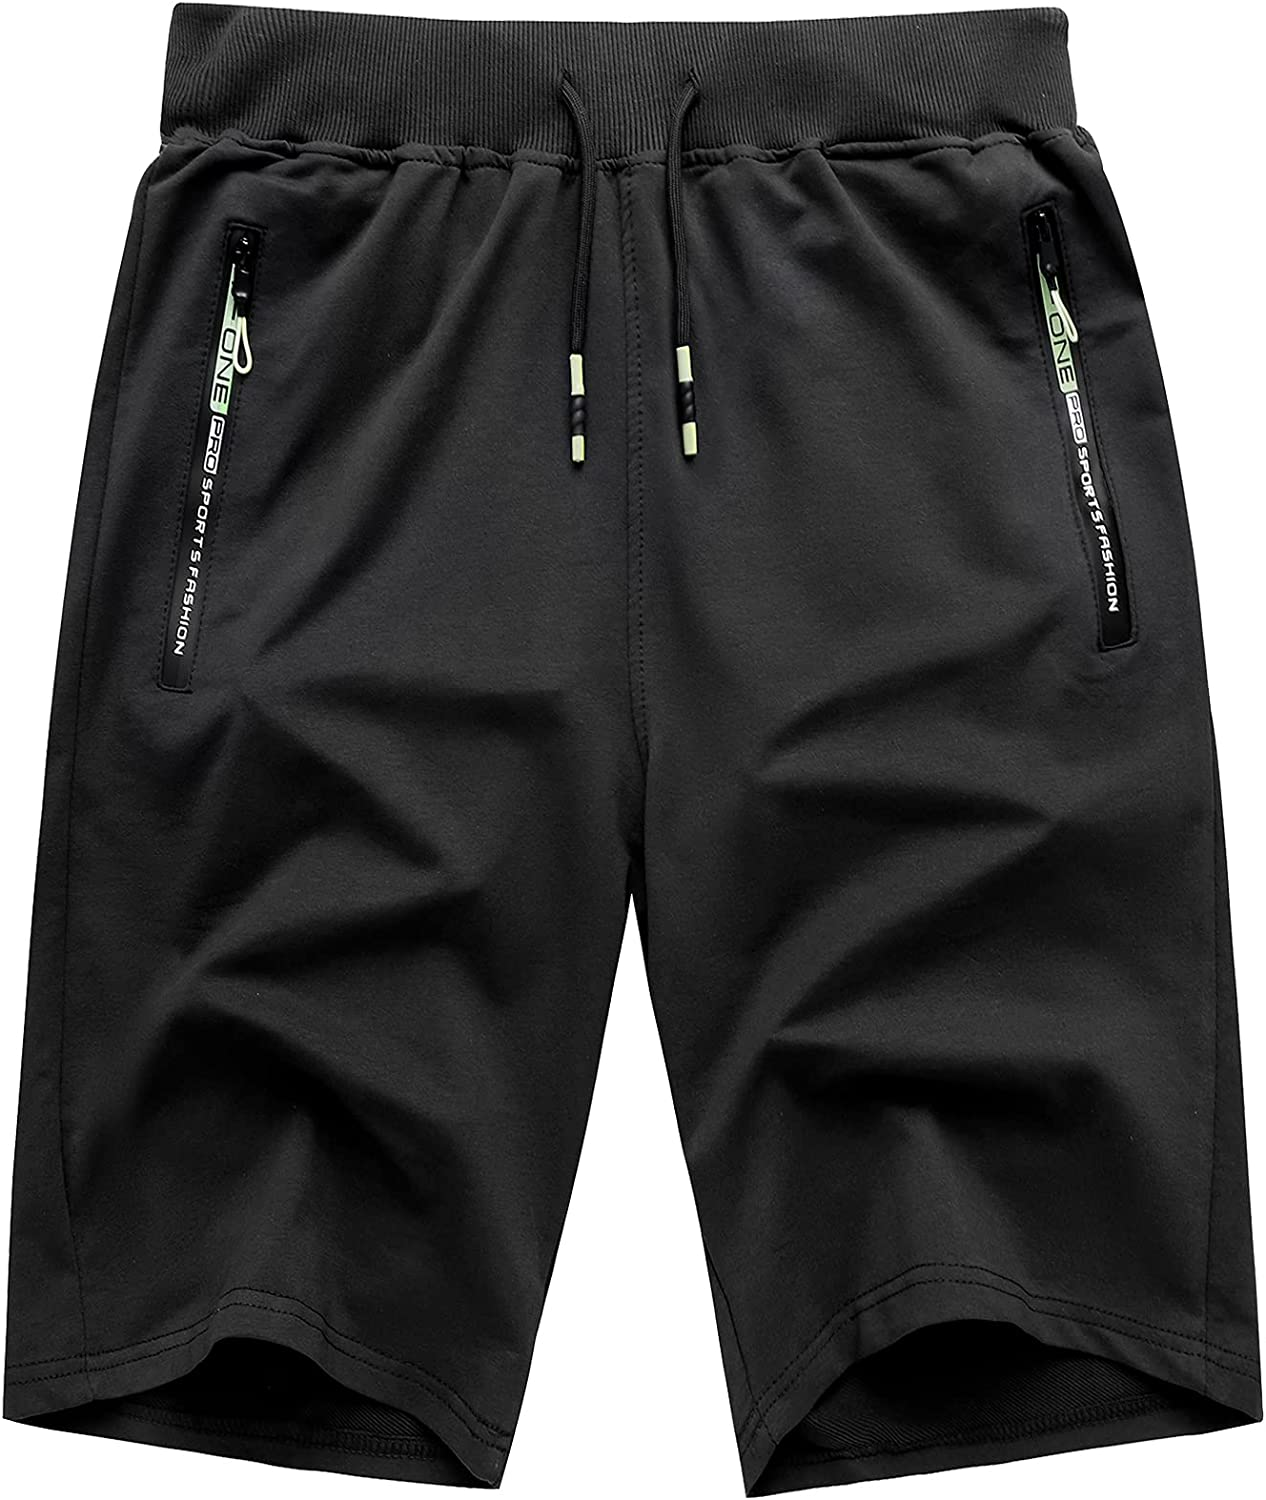 GEEK LIGHTING Mens Shorts Workout Sale special price Draw Comfortable Casual Max 67% OFF